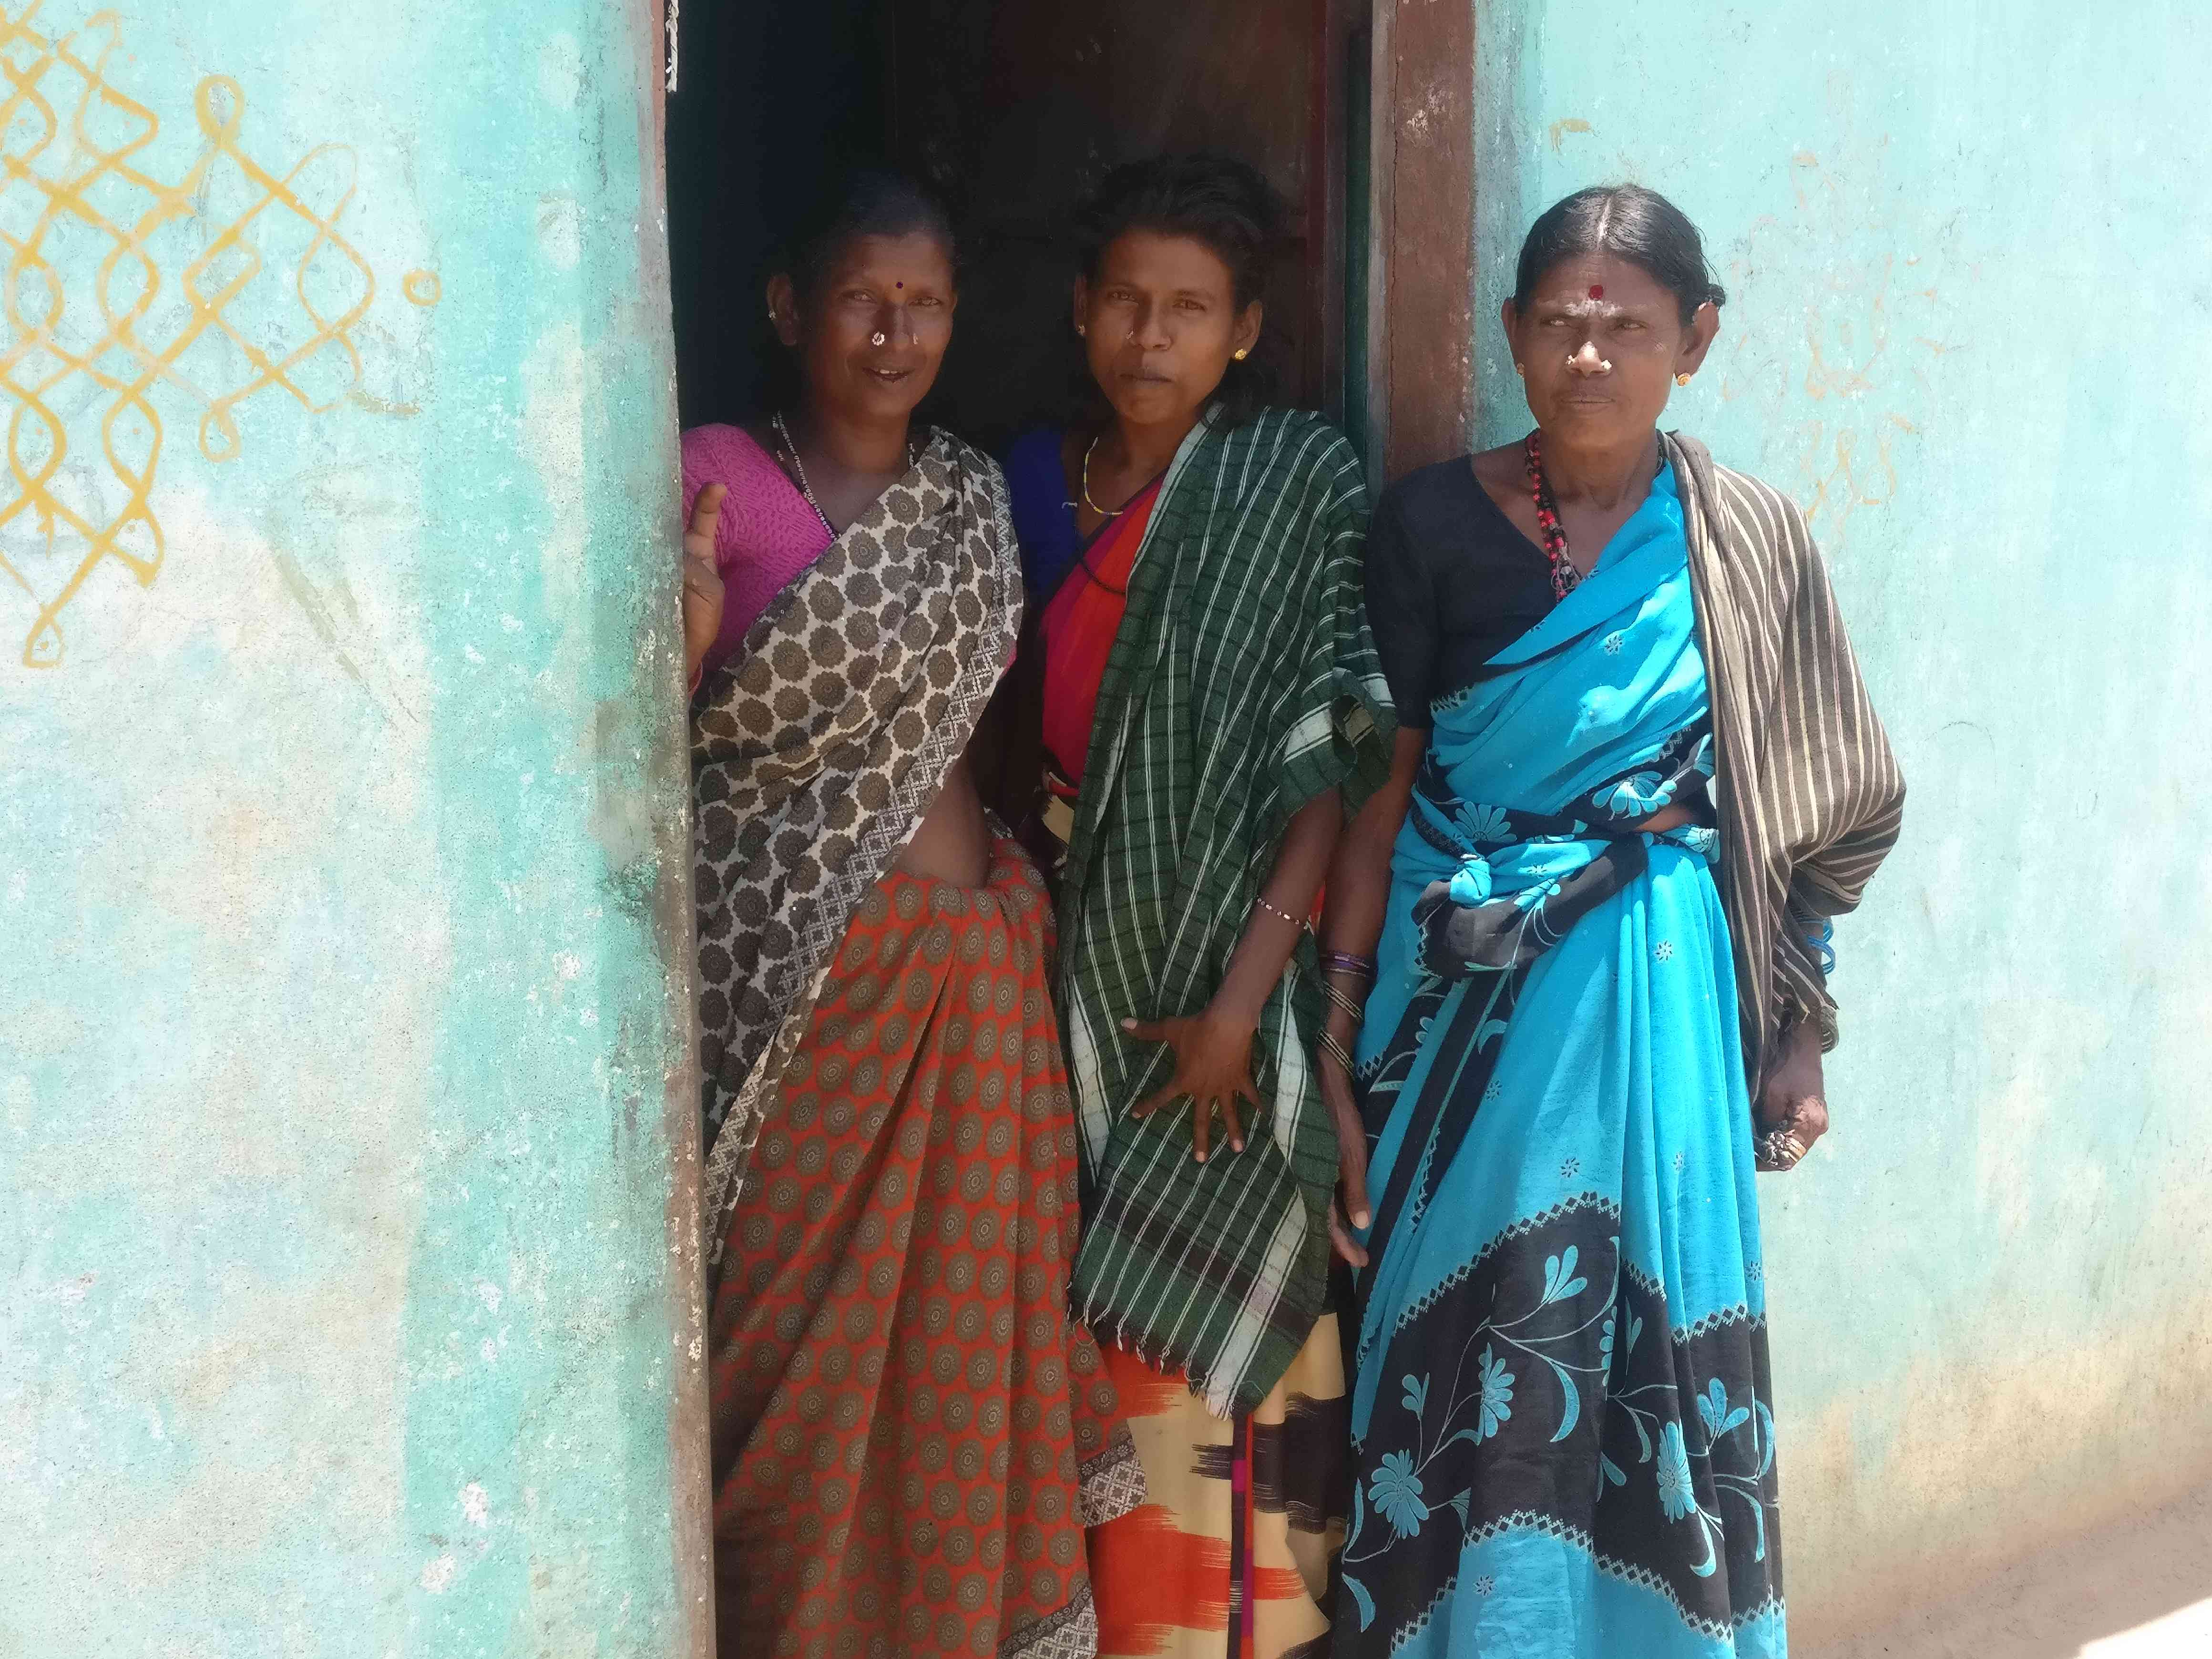 Irular women of Kodakarai village, Tamil Nadu. Photo credit: Nayantara Narayanan